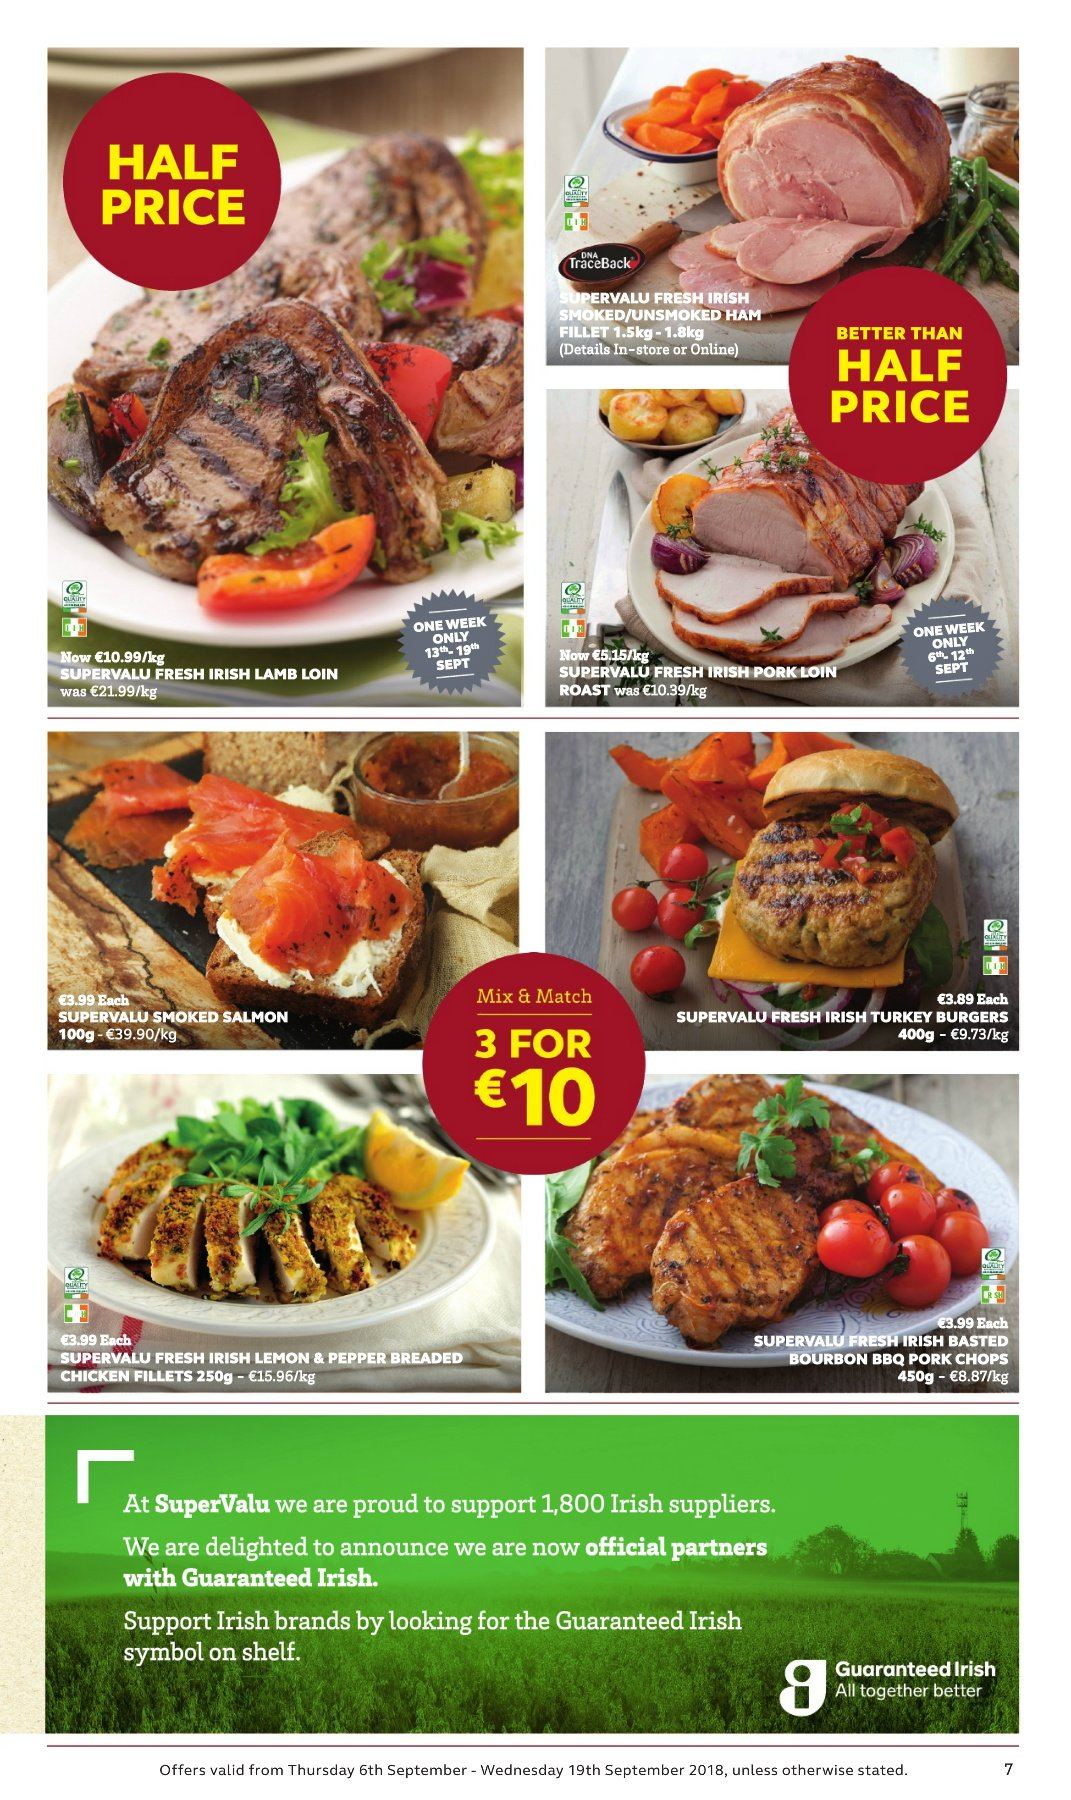 SuperValu offer  - 6.9.2018 - 19.9.2018 - Sales products - salmon, smoked salmon, hamburger, fried chicken, ham, bourbon, turkey, chicken, pork chops, lamb loin, lamb meat. Page 7.